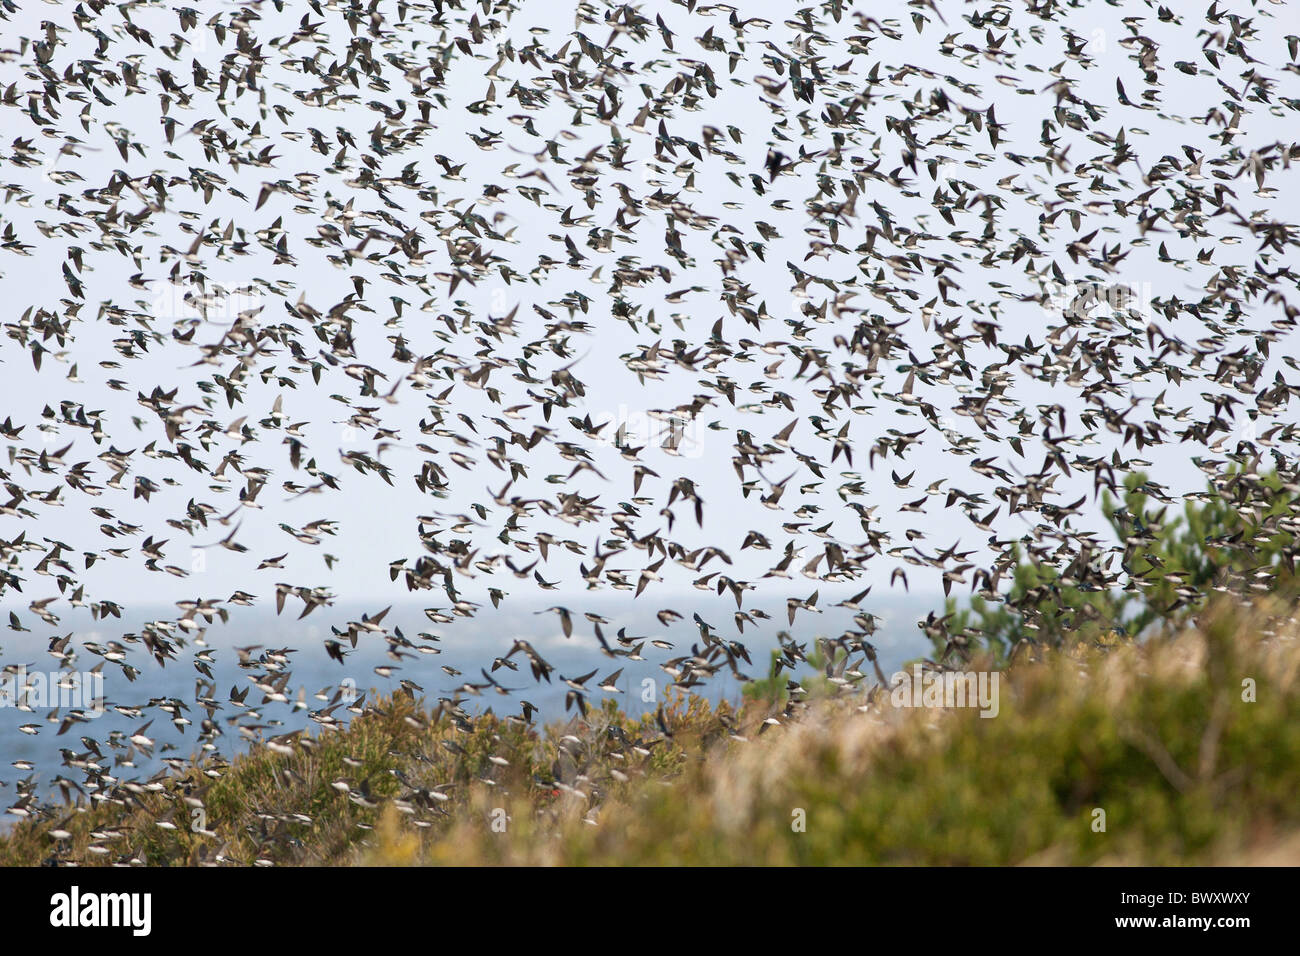 A migrating flock of Tree Swallows at Cape May New Jersey - Stock Image